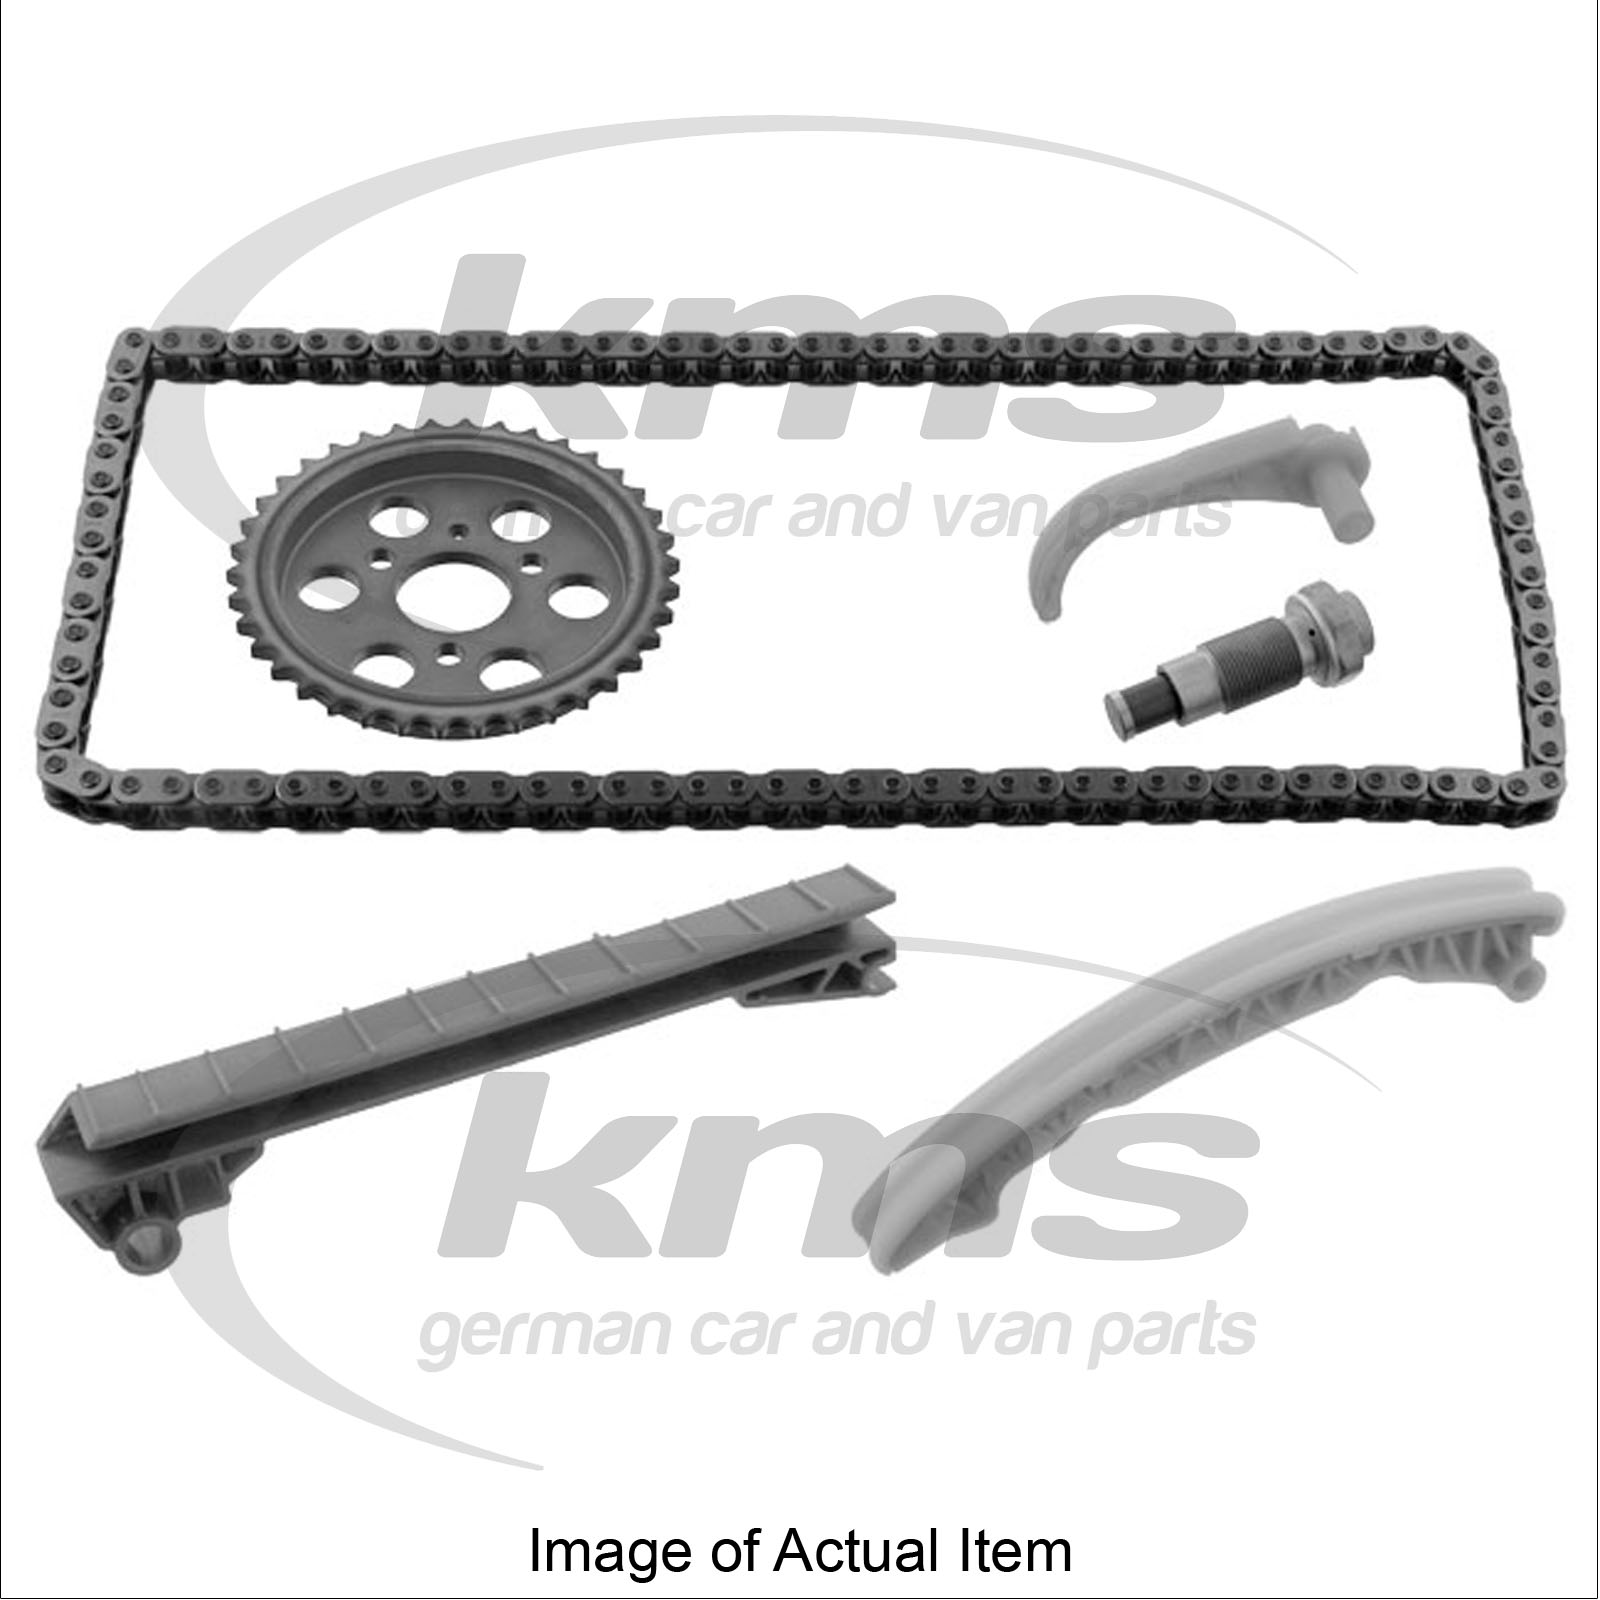 Timing chain kit mercedes benz vaneo mpv cdi w414 1 7l for Mercedes benz chain